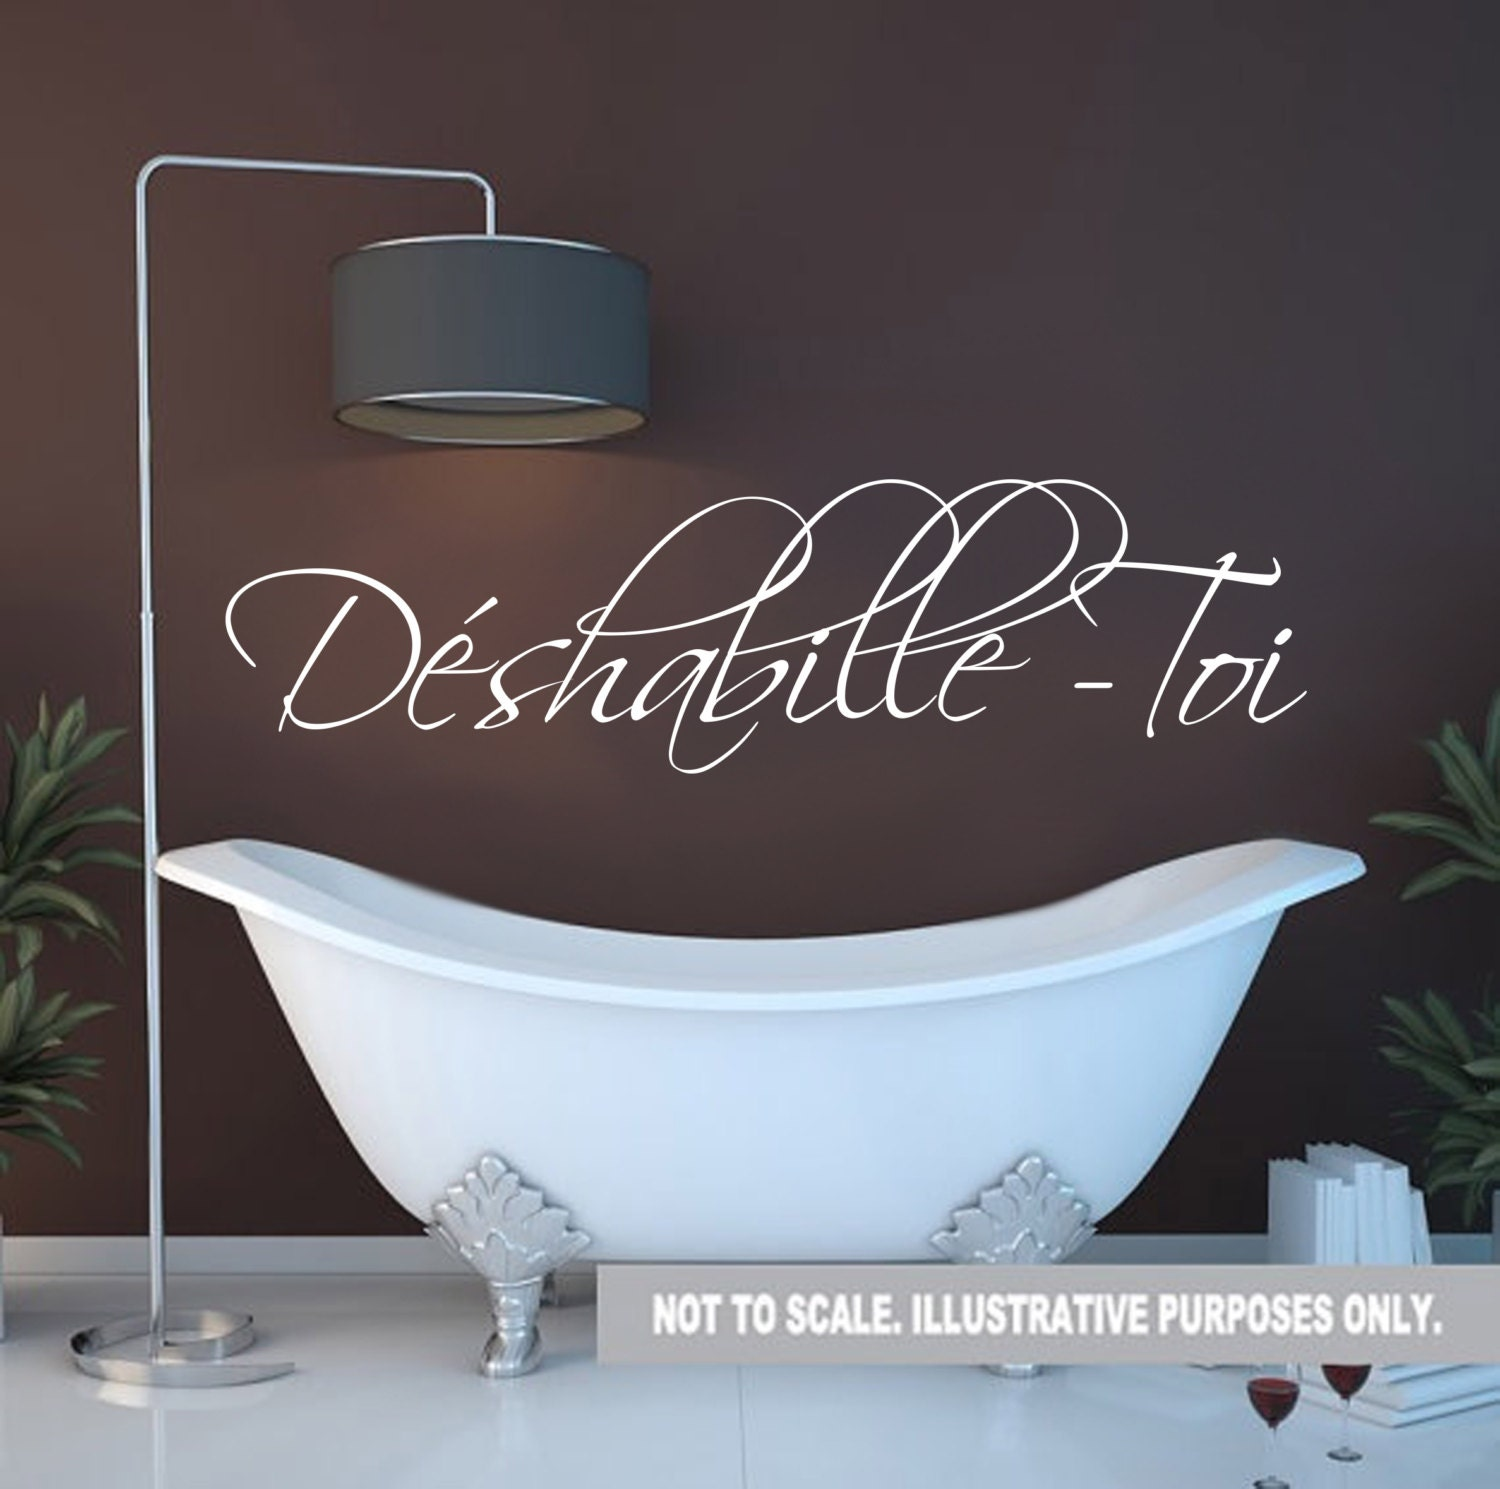 Get Naked Déshabille Toi French Wall Decal Bathroom